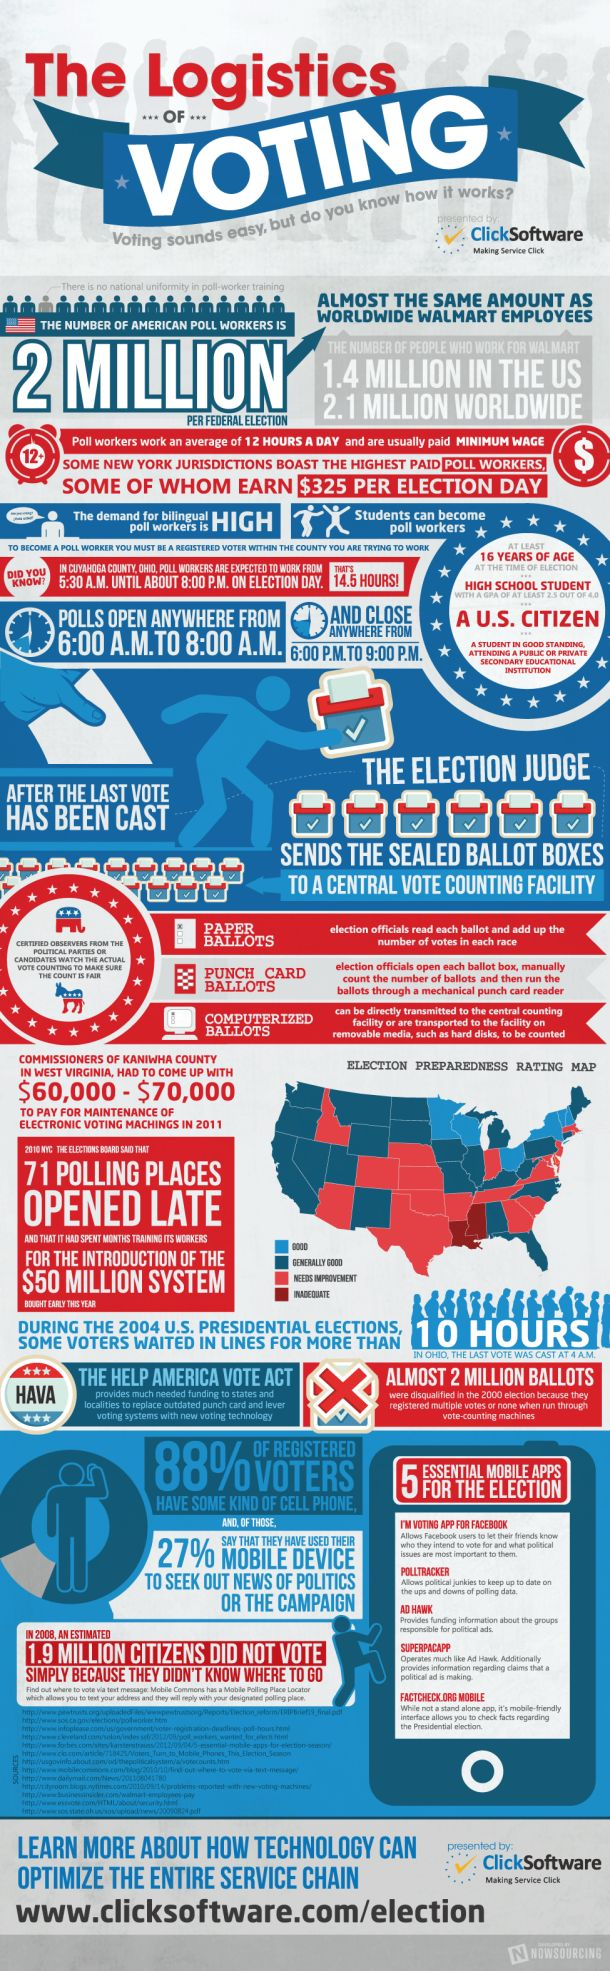 The Logistics of Voting [INFOGRAPHIC]